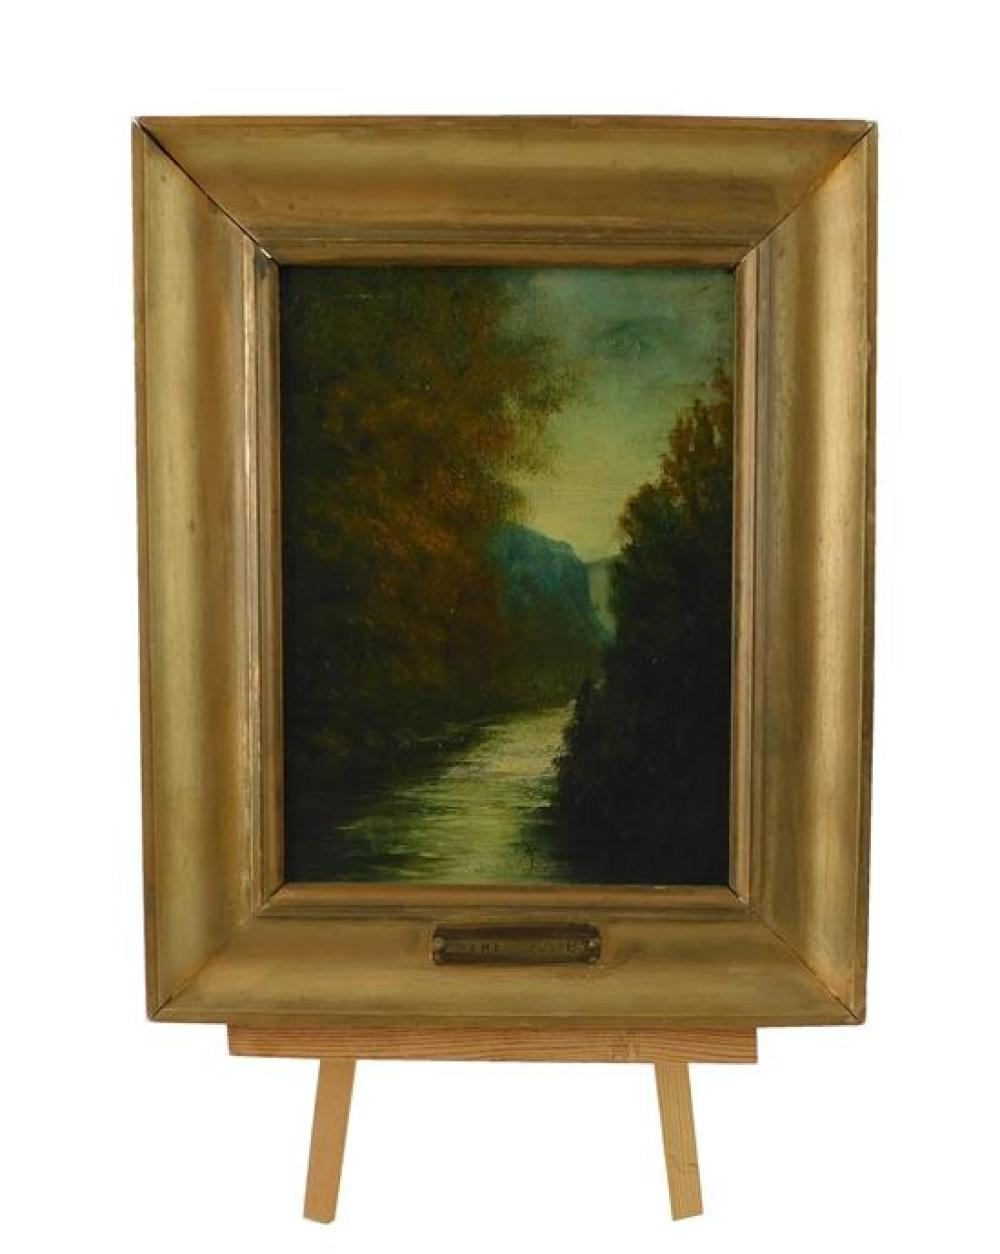 "Oil on board, small landscape with plaque ""Maxwell Foster"", depicts small river running through mountainous forest, unsigned, wear c..."